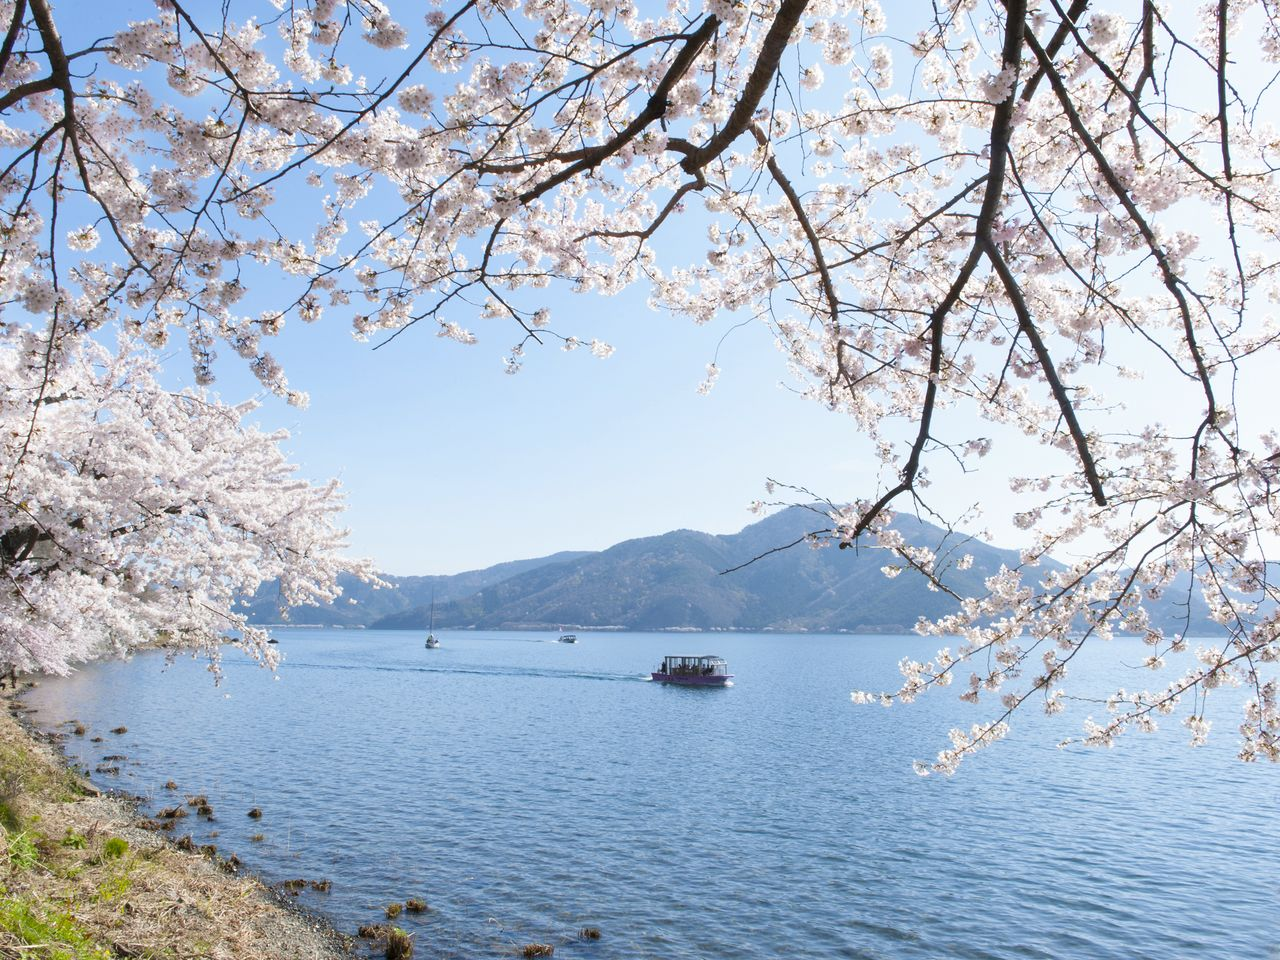 Tour boats depart from the Kaizu fishing port, Nihonmatsu, Takagihama, and several other points along the lake's edge.